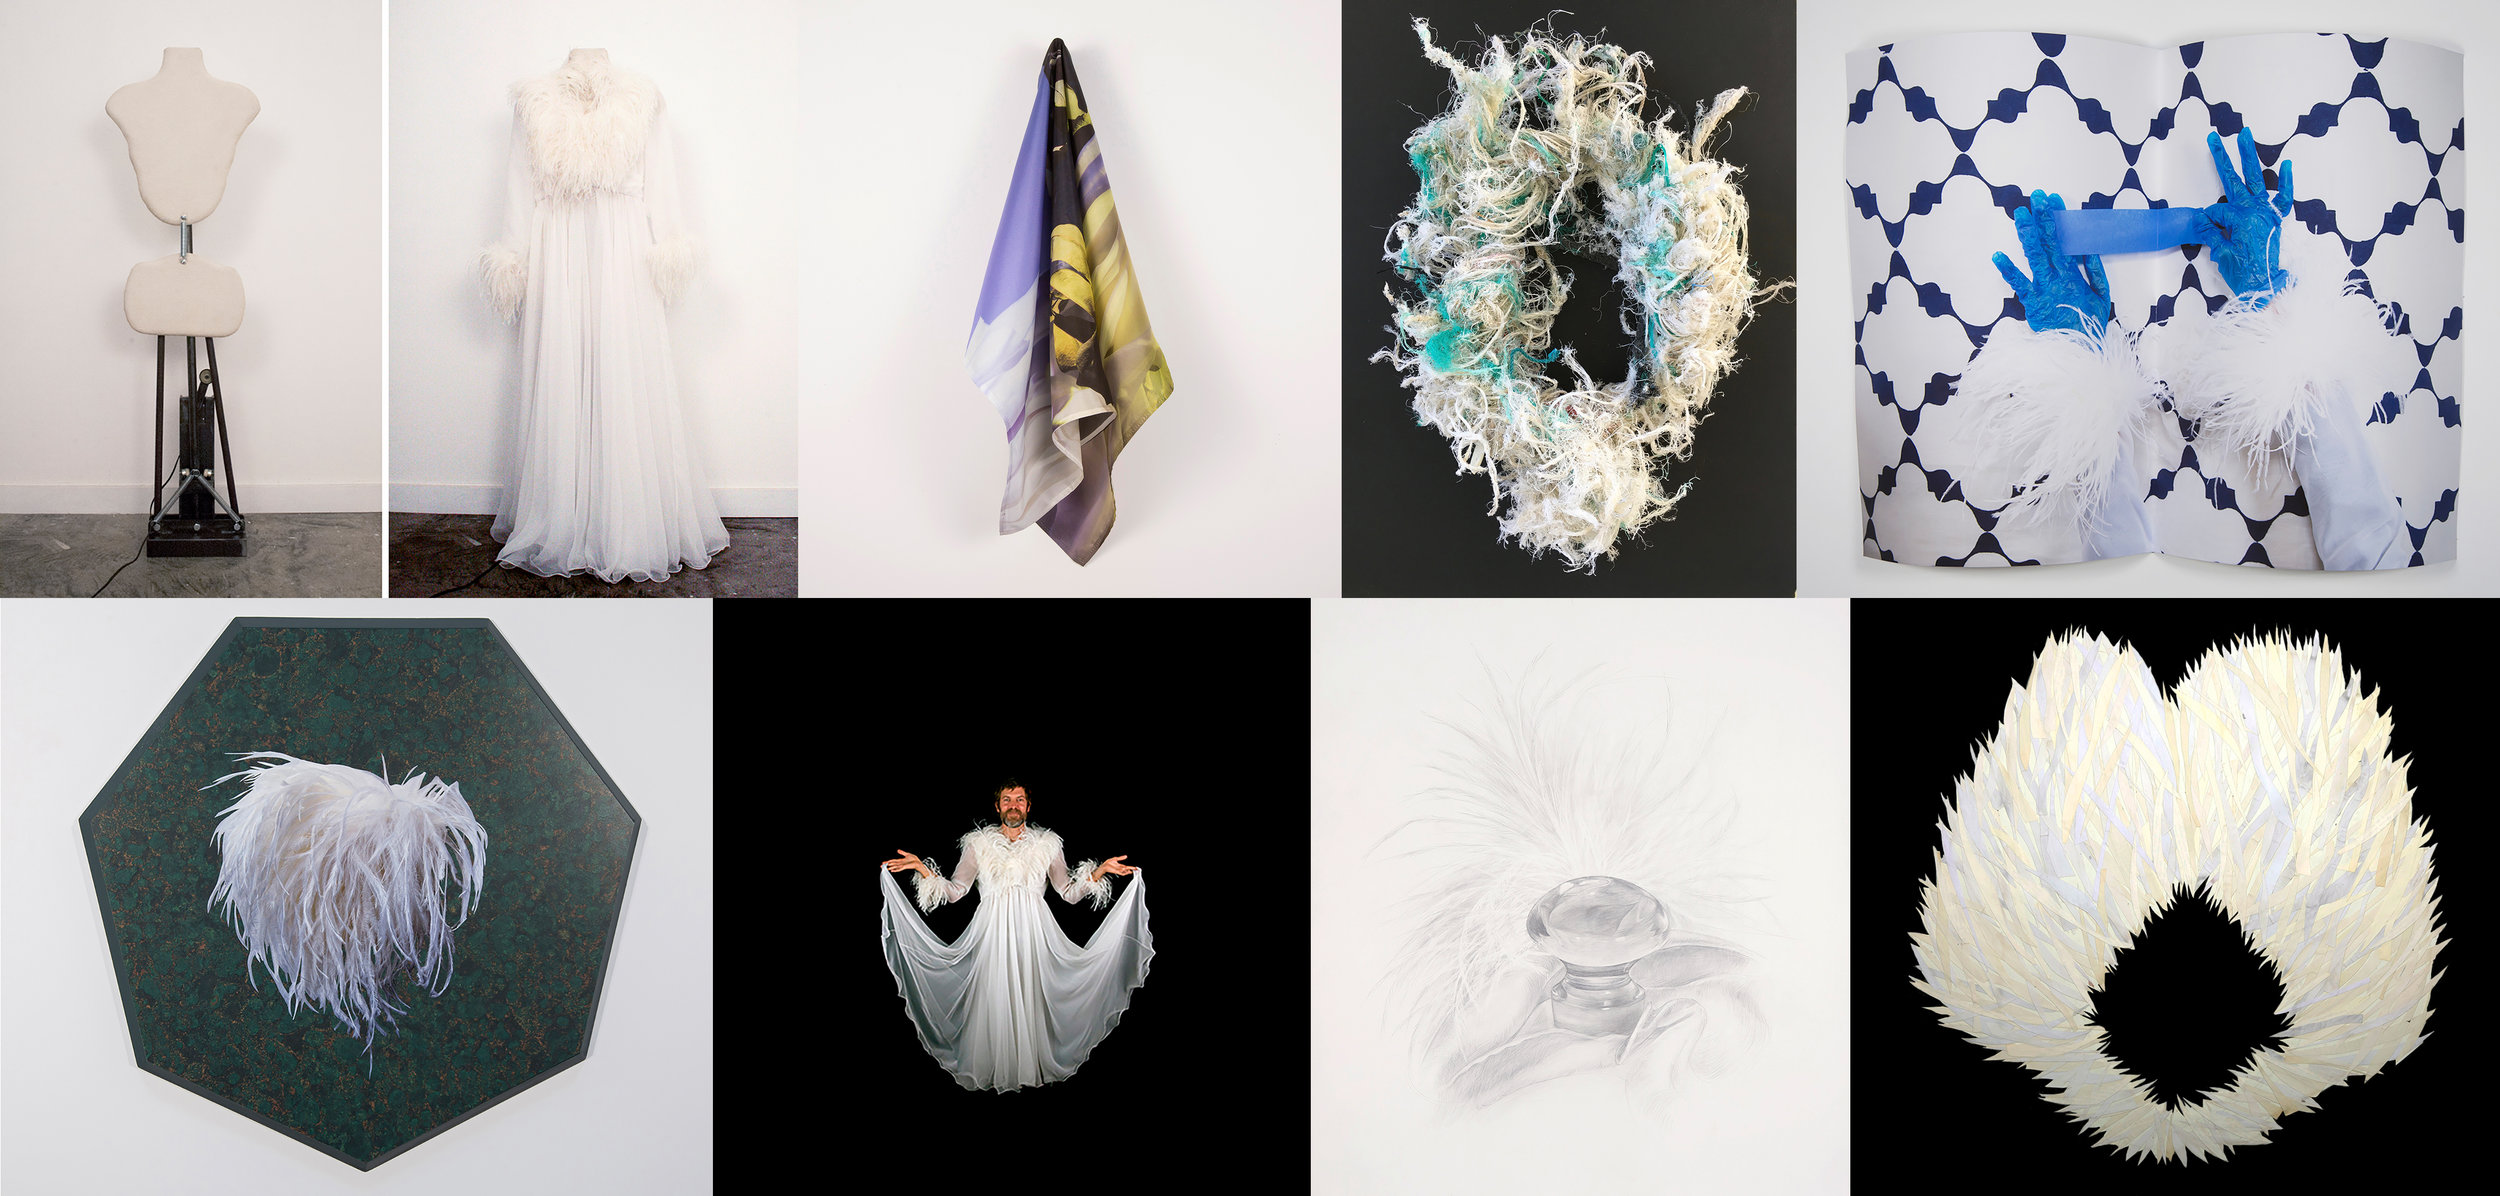 Ostrich Feather Wedding Dress Project work clockwise from top left: Tom Van Houten, Cait Molloy, Judith Selby Lang, Marcela Pardo Ariza, Ray Beldner, Katherine Vetne, Evie Leder, Hadar Kleinman.